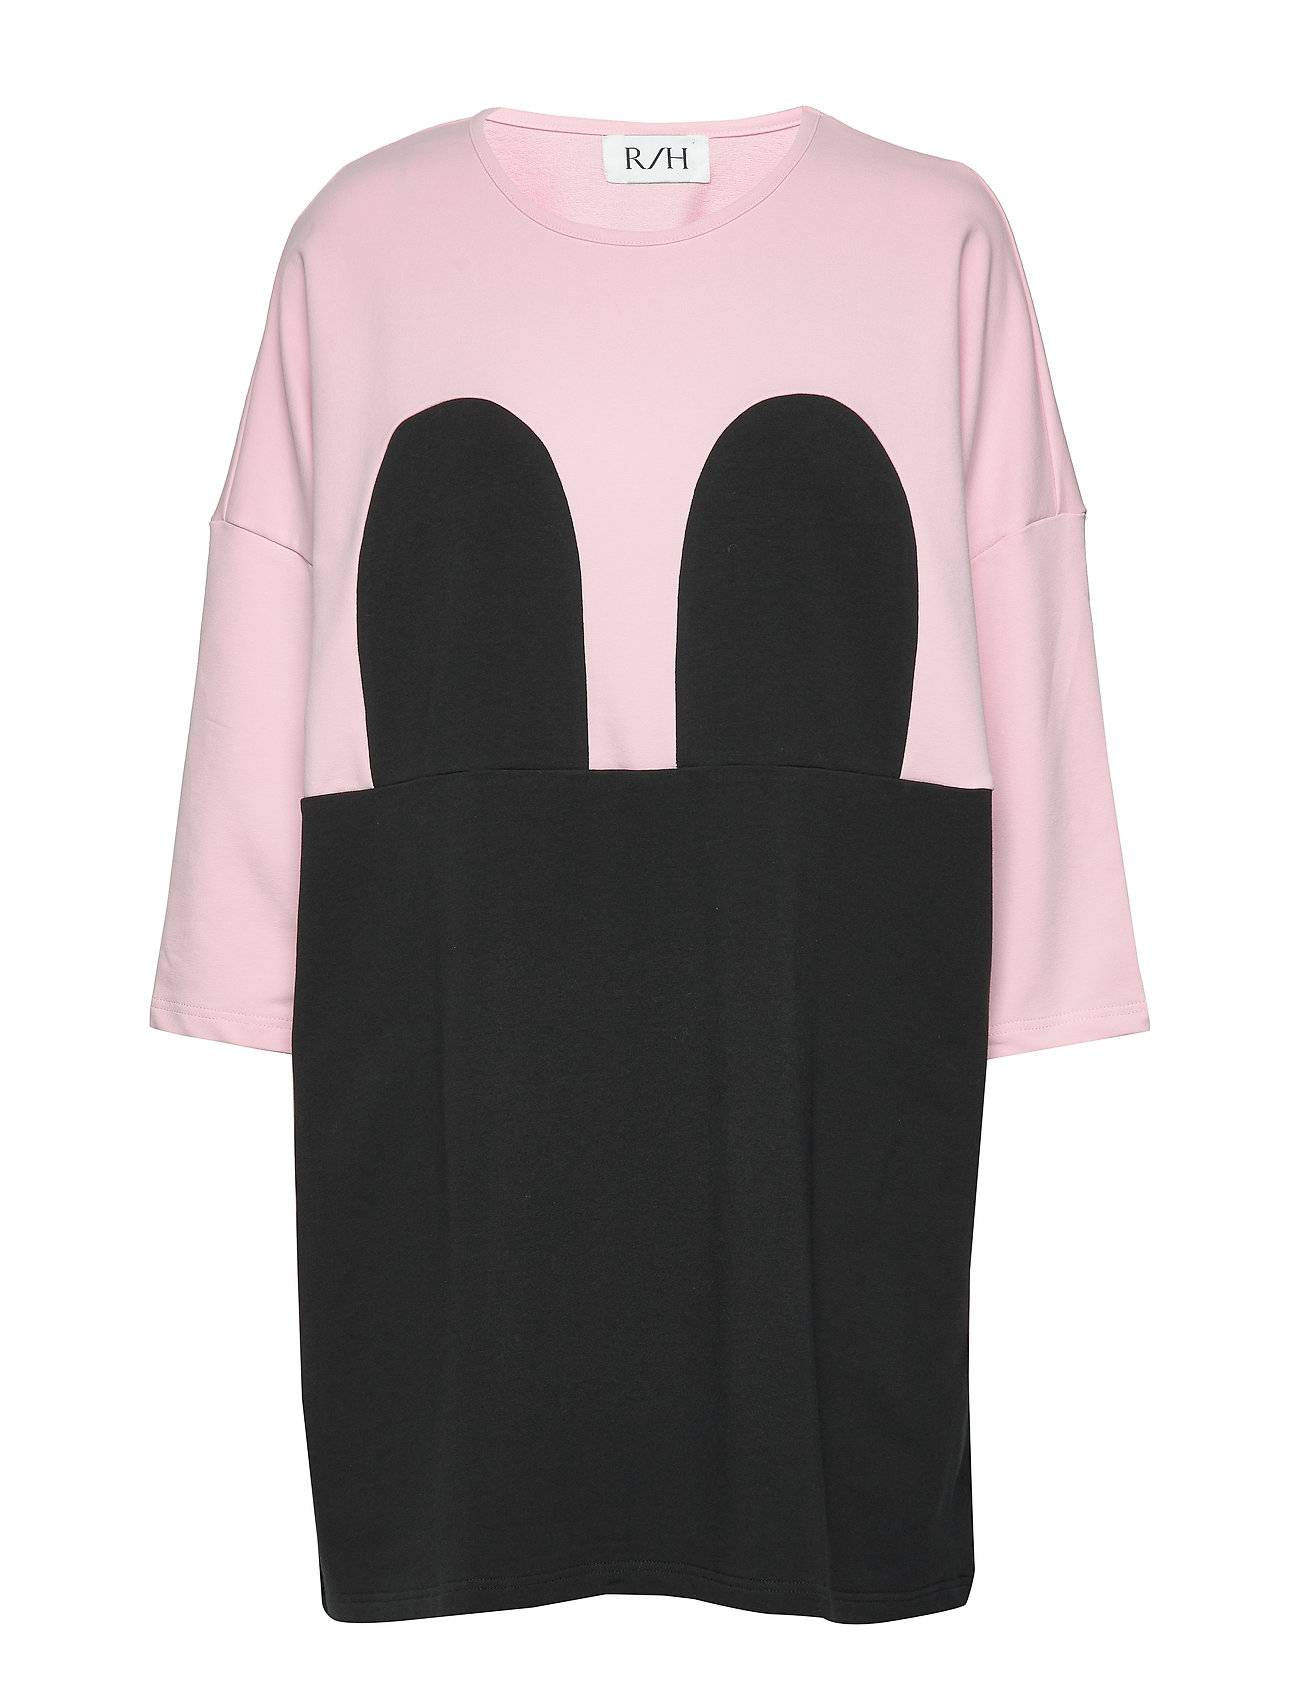 R/H Studio Mickey Square Dress